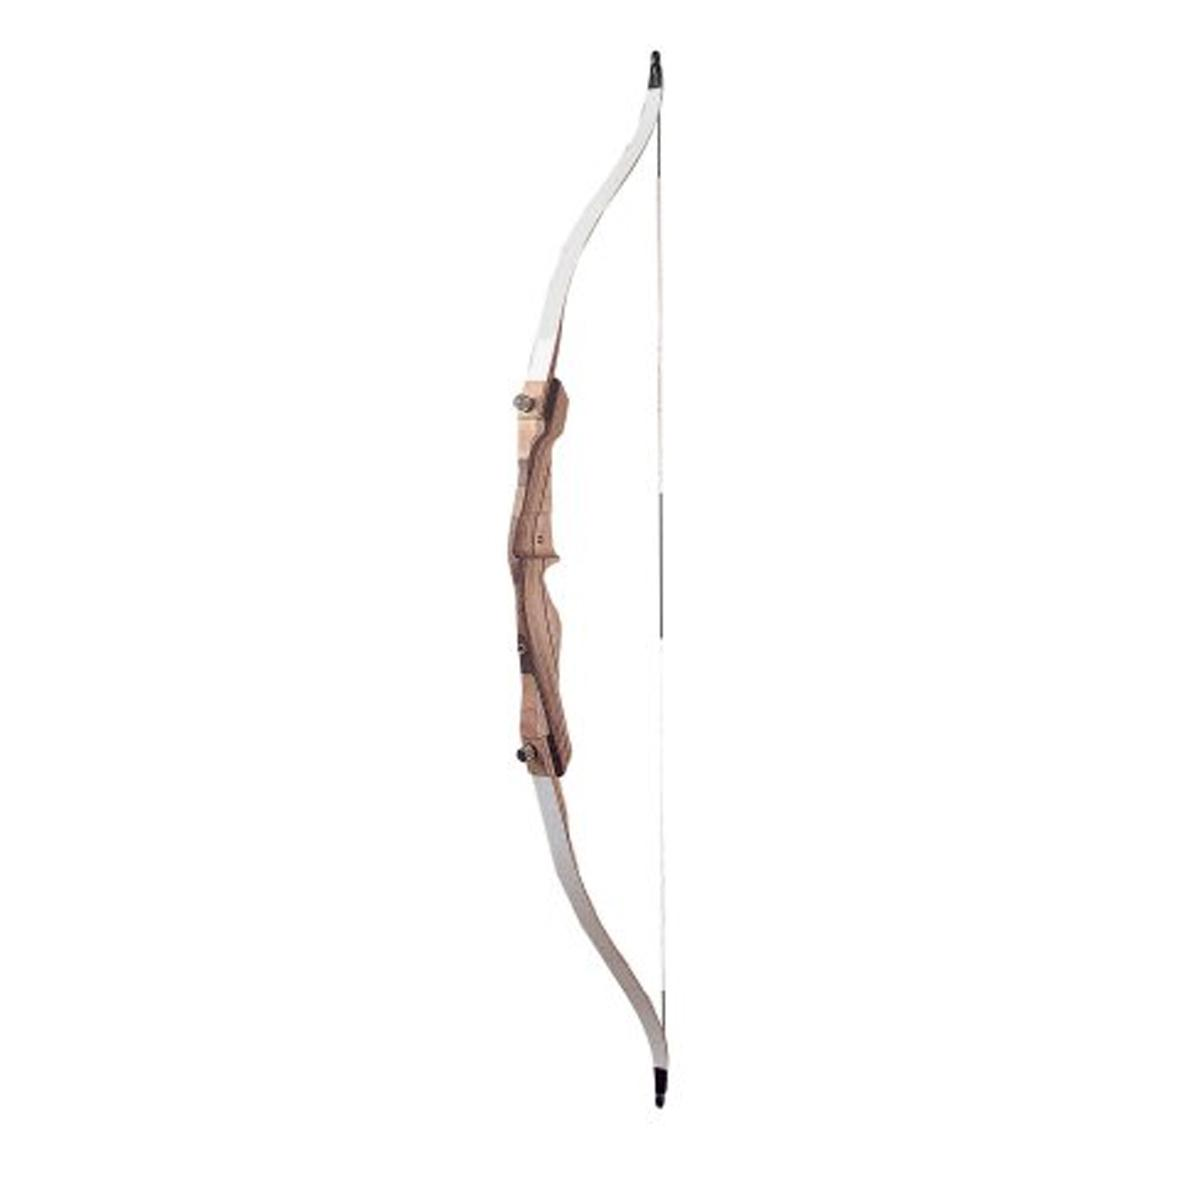 bear recurve bow dating Build a recurve bow - woodworking projects - american woodworker - check more on my website find this pin and more on bows by sean manning i have two old fred bear bows.